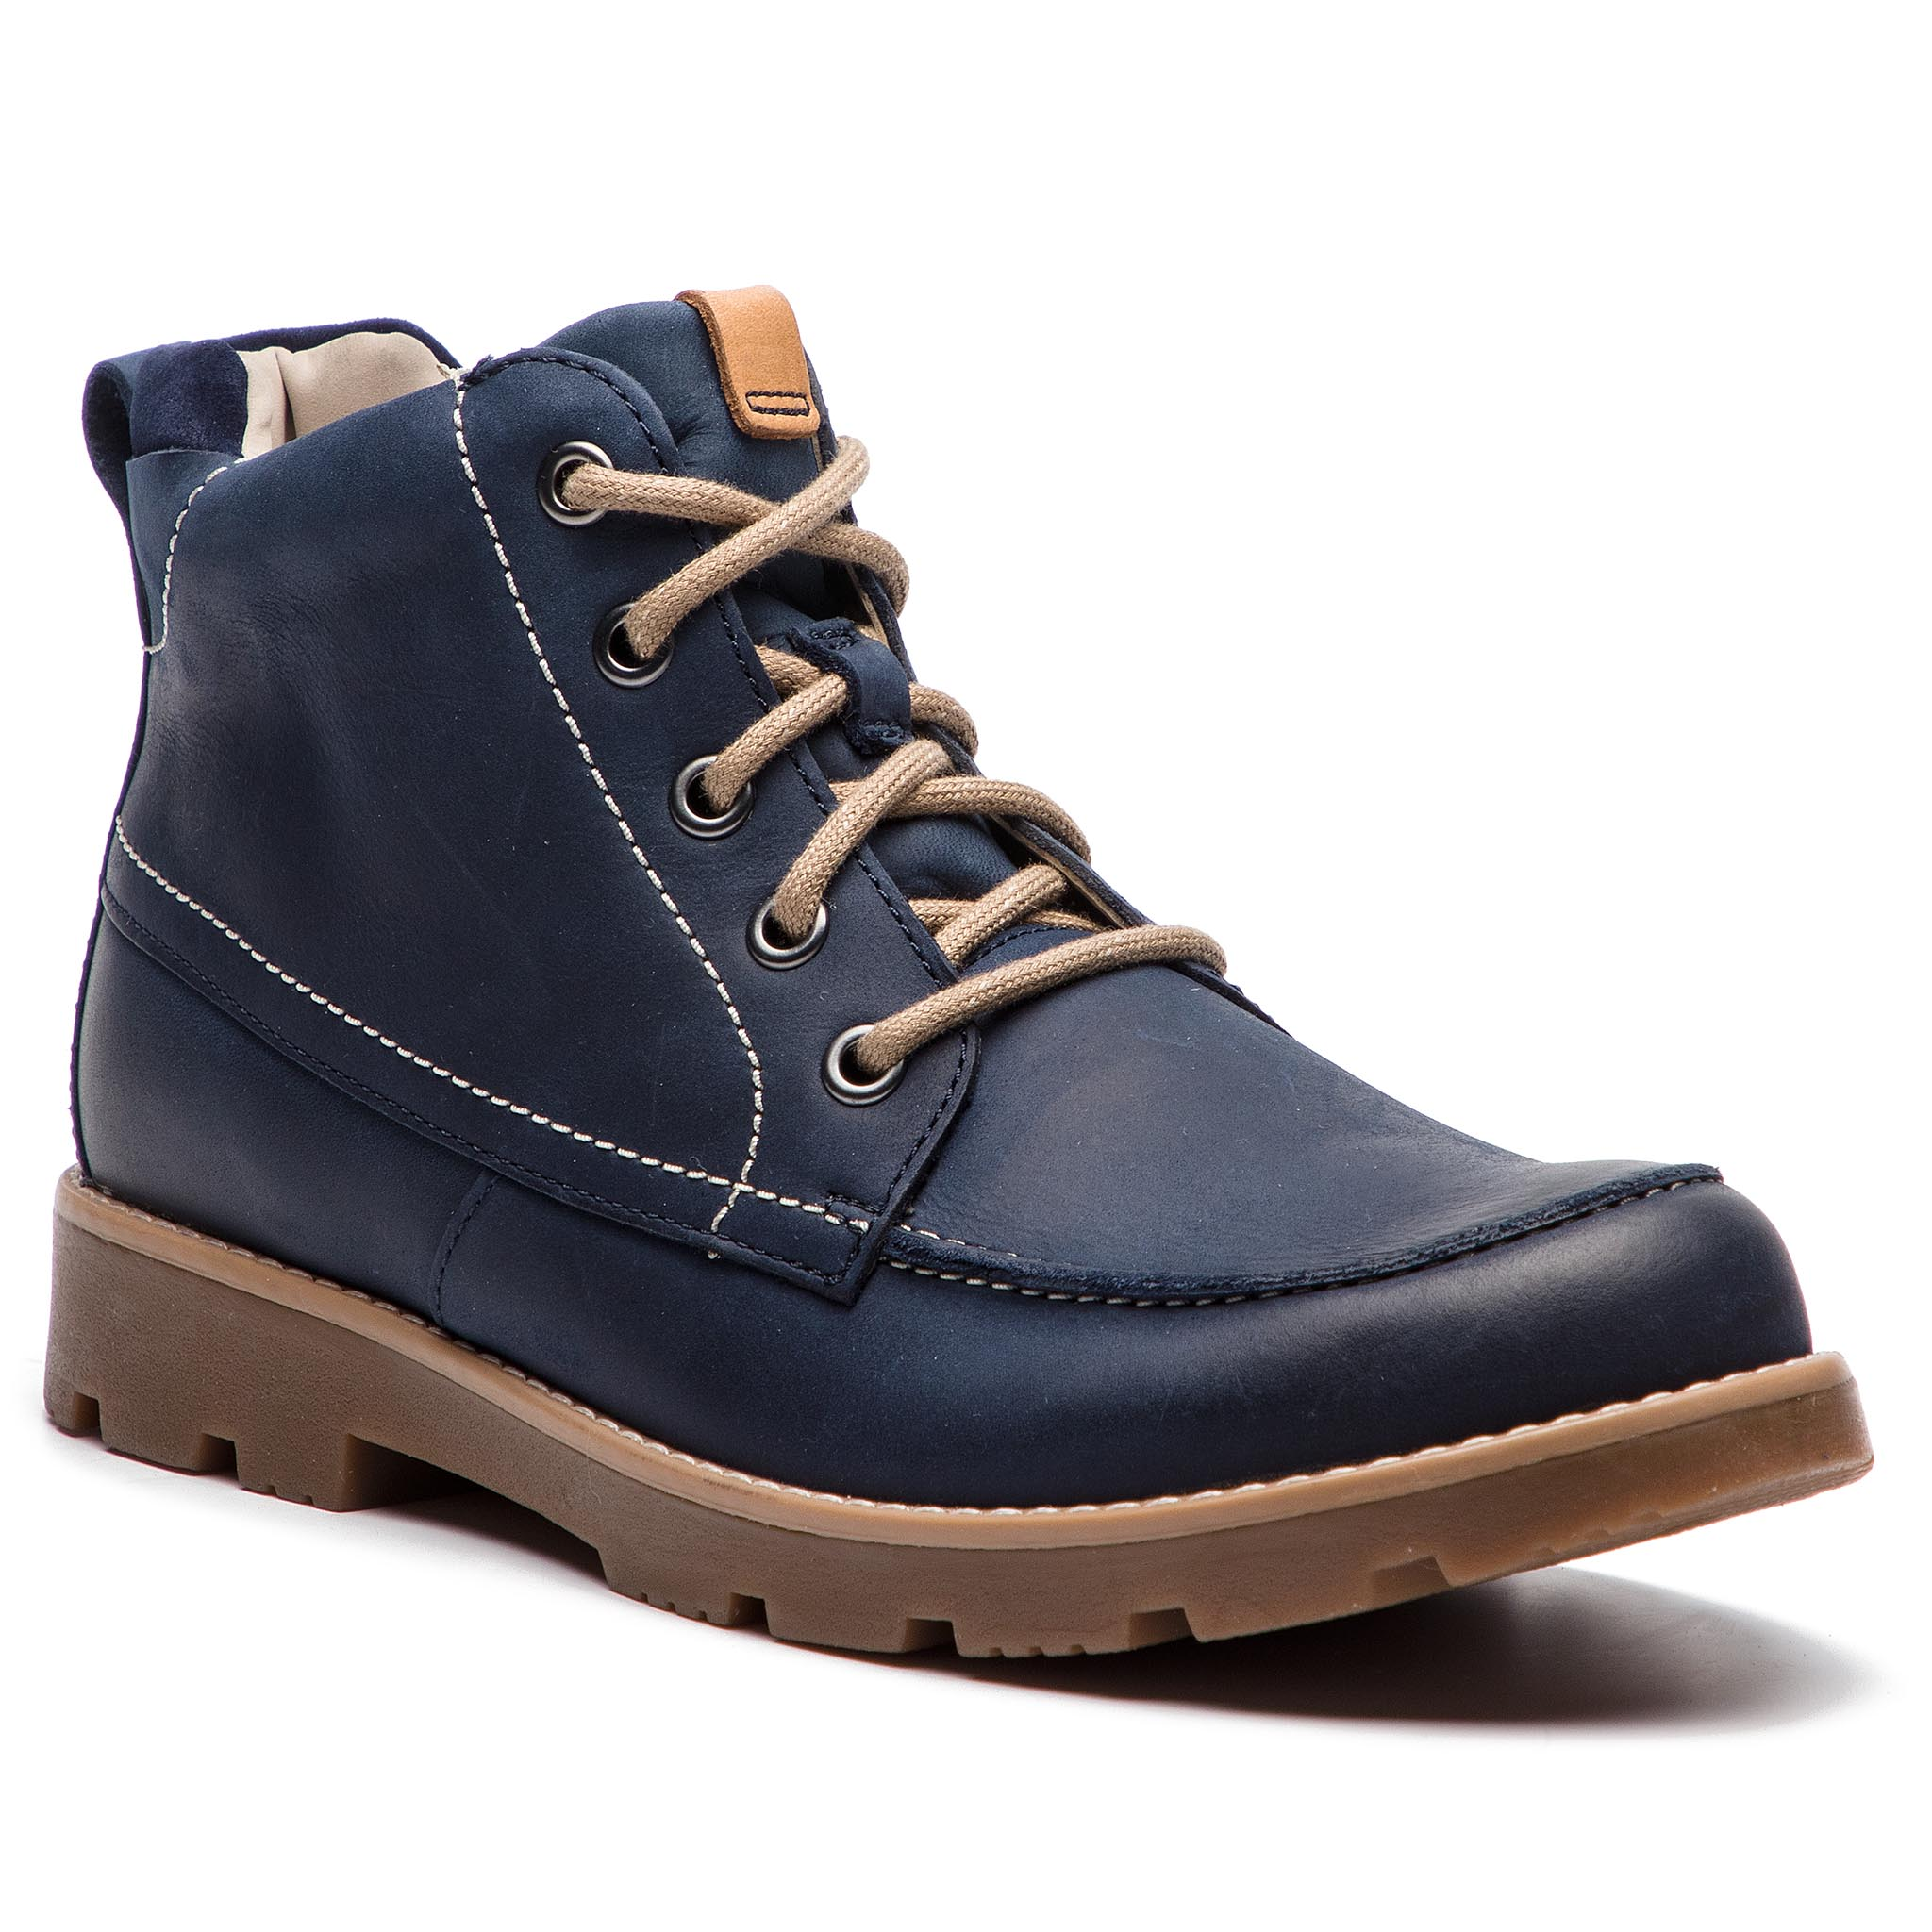 Boots CLARKS - Comet Moon 261358516 Navy Leather